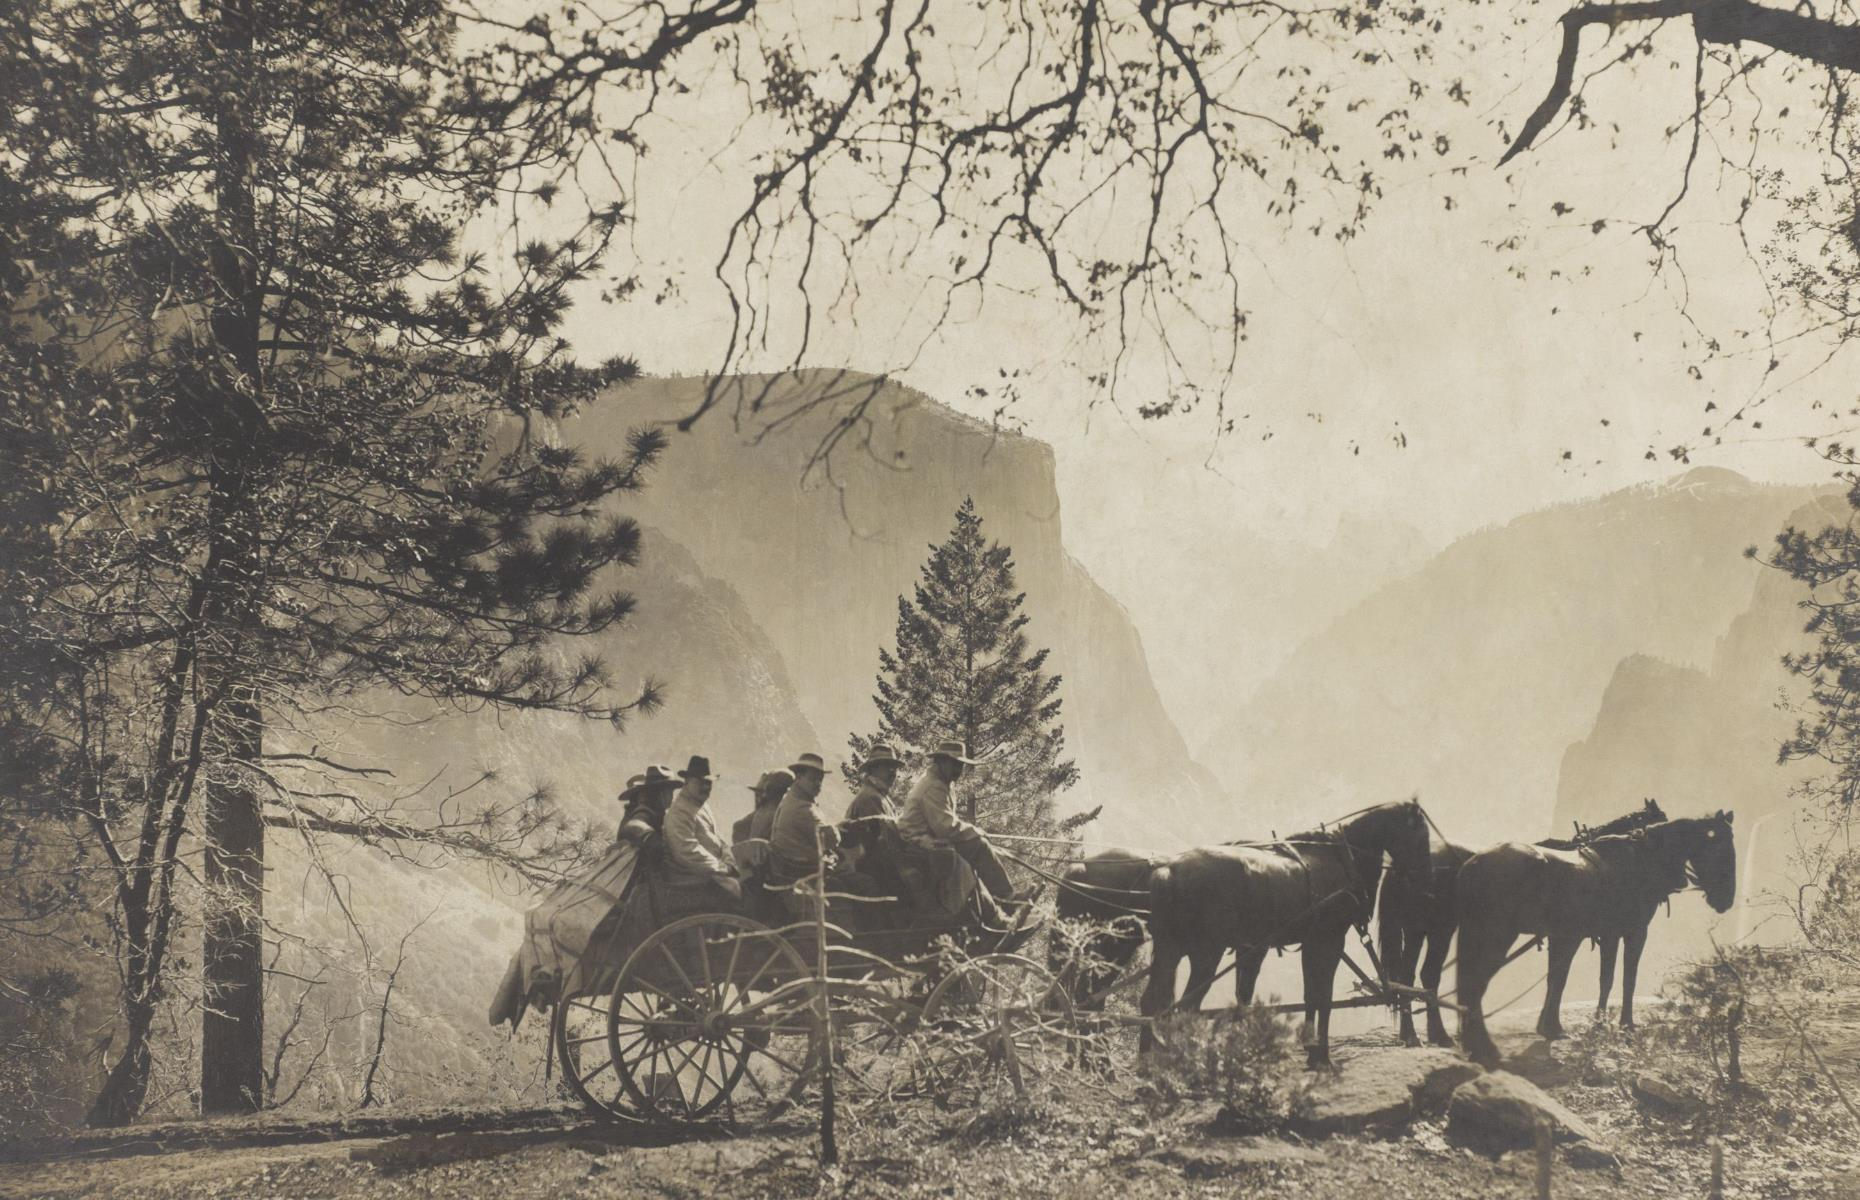 Slide 17 of 51: In this photograph, taken in 1903, Theodore Roosevelt visits Inspiration Point in the Yosemite Valley, accompanied by the well-known naturalist John Muir. Parts of the area were established as a State Park in 1864 before a National Park was confirmed in 1890, although it wasn't until 1906 that the parks were merged to create Yosemite National Park as we know it today. Tourism has risen significantly in the past 75 years: one million people visited the park for the first time in 1954, two million in 1976, and double that amount by the 1990s.